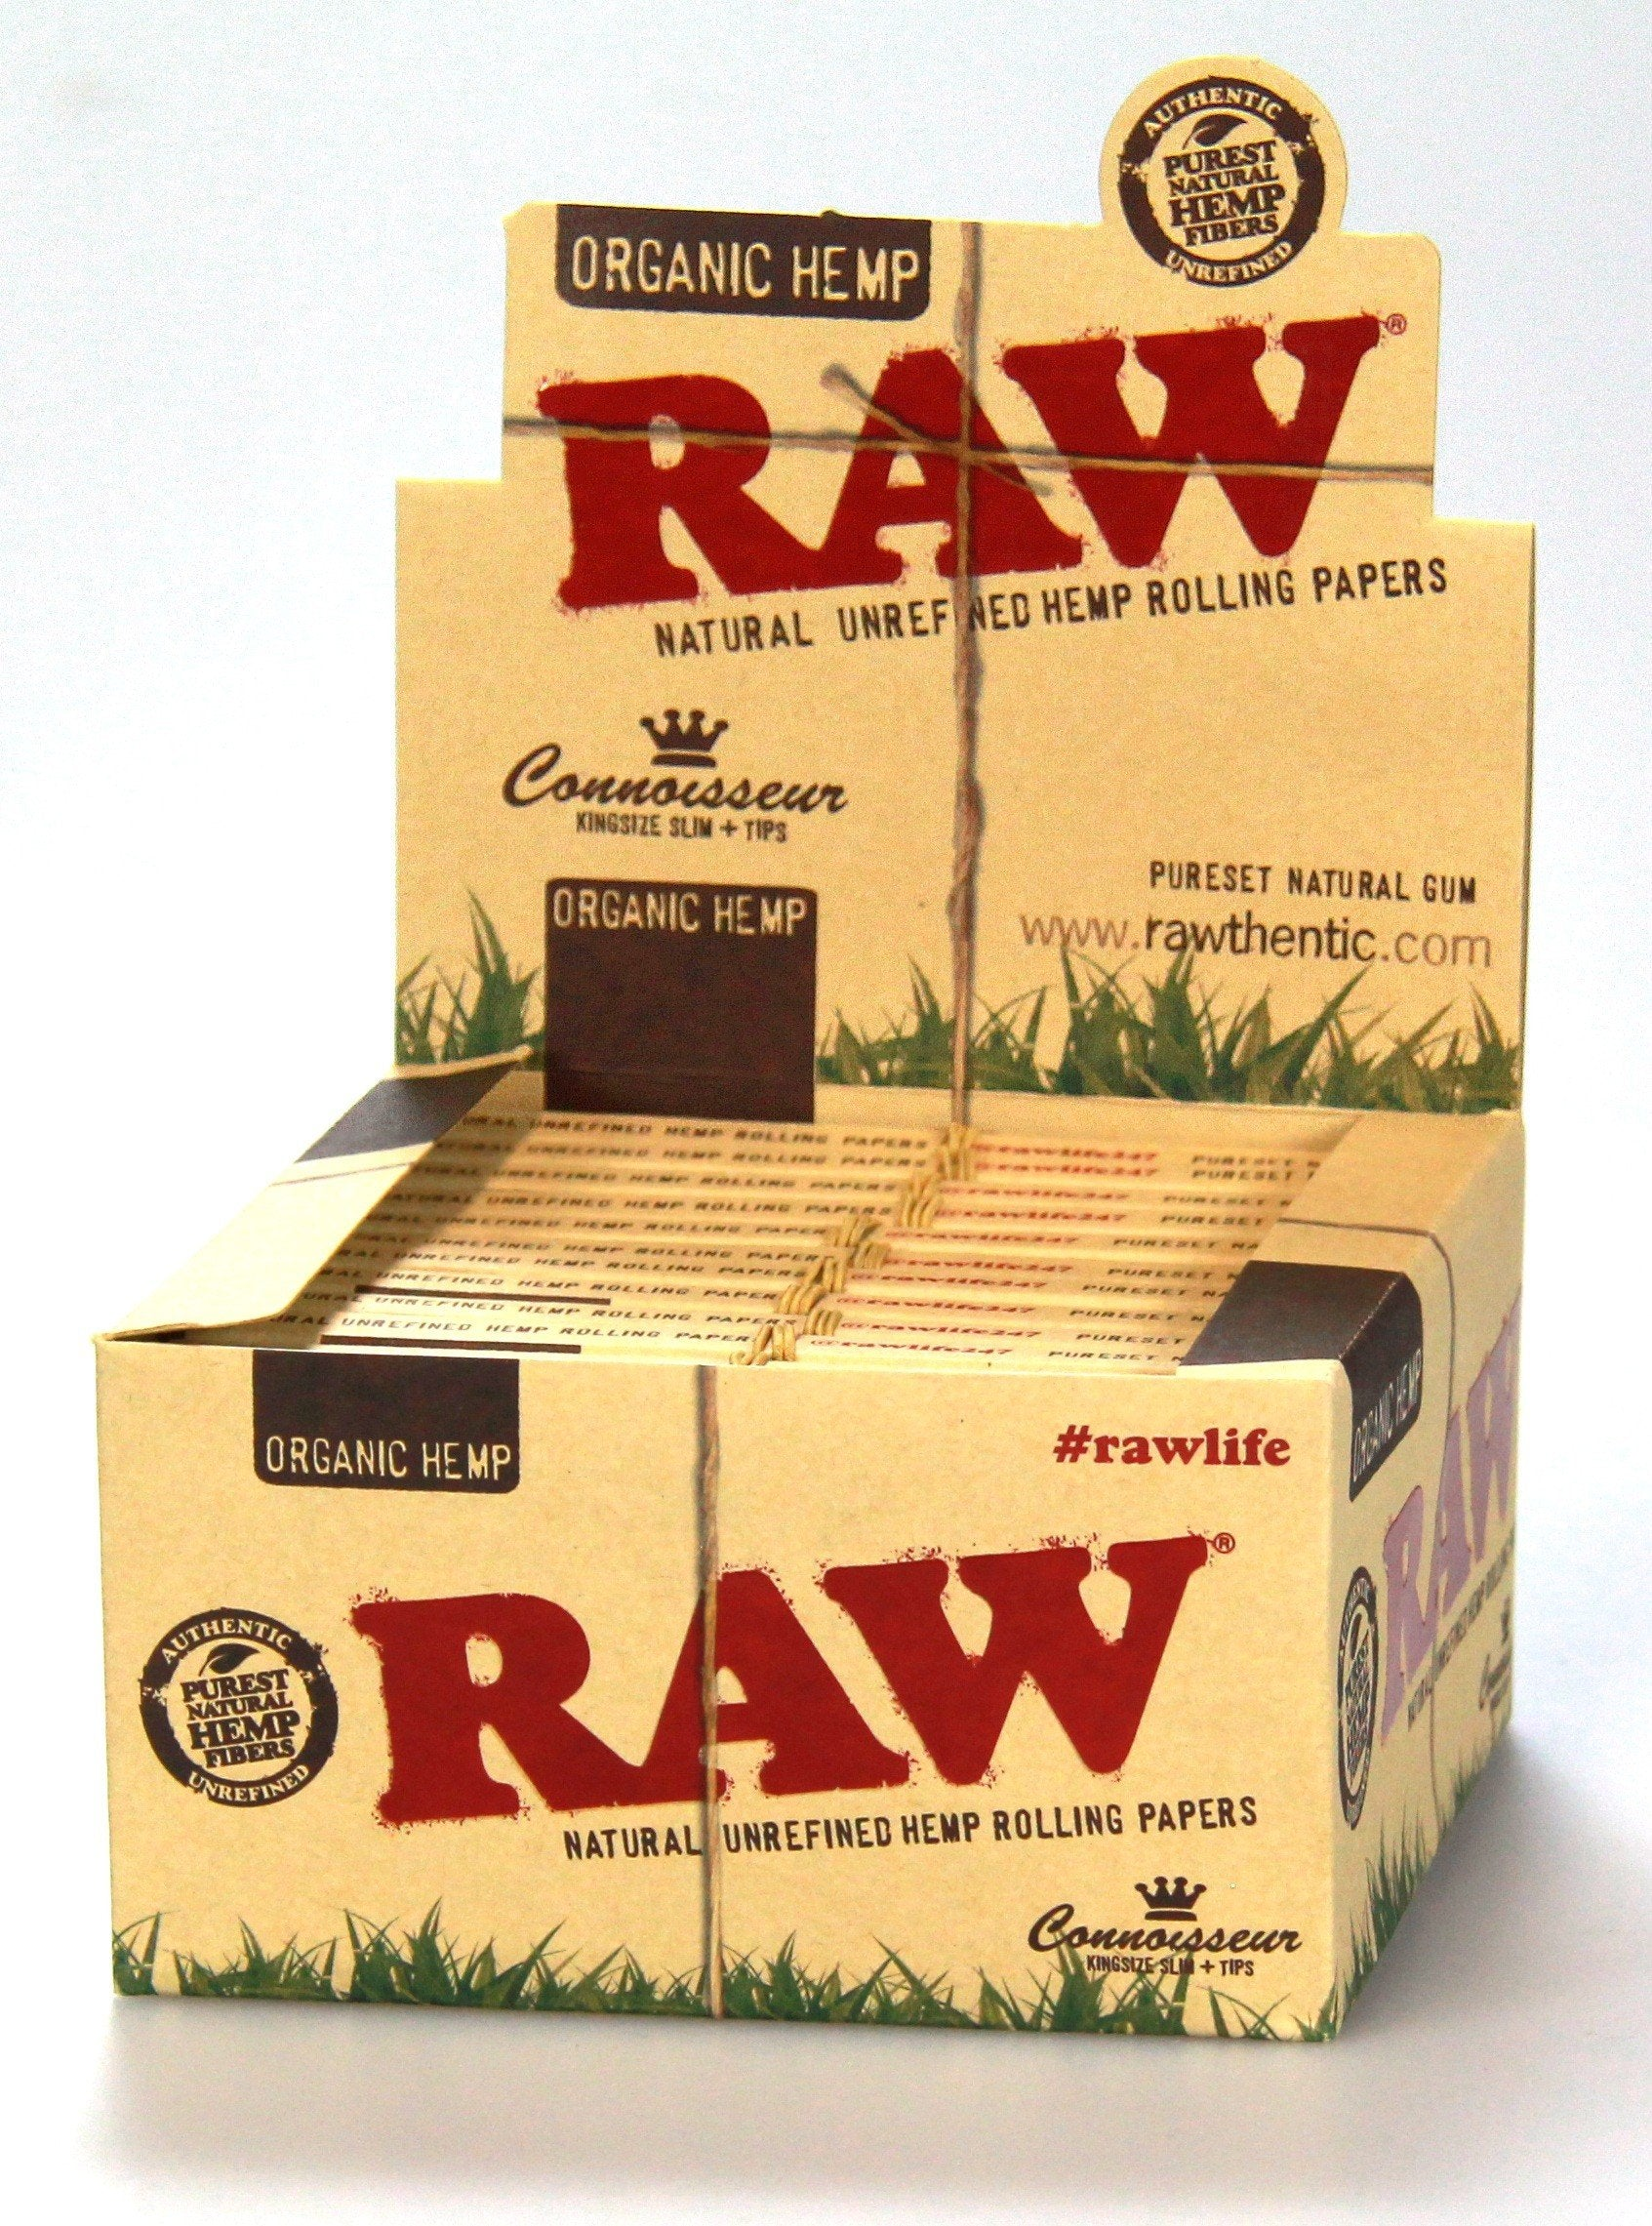 RAW Organic Connoisseur King Slim w/ Tips (24 pack)